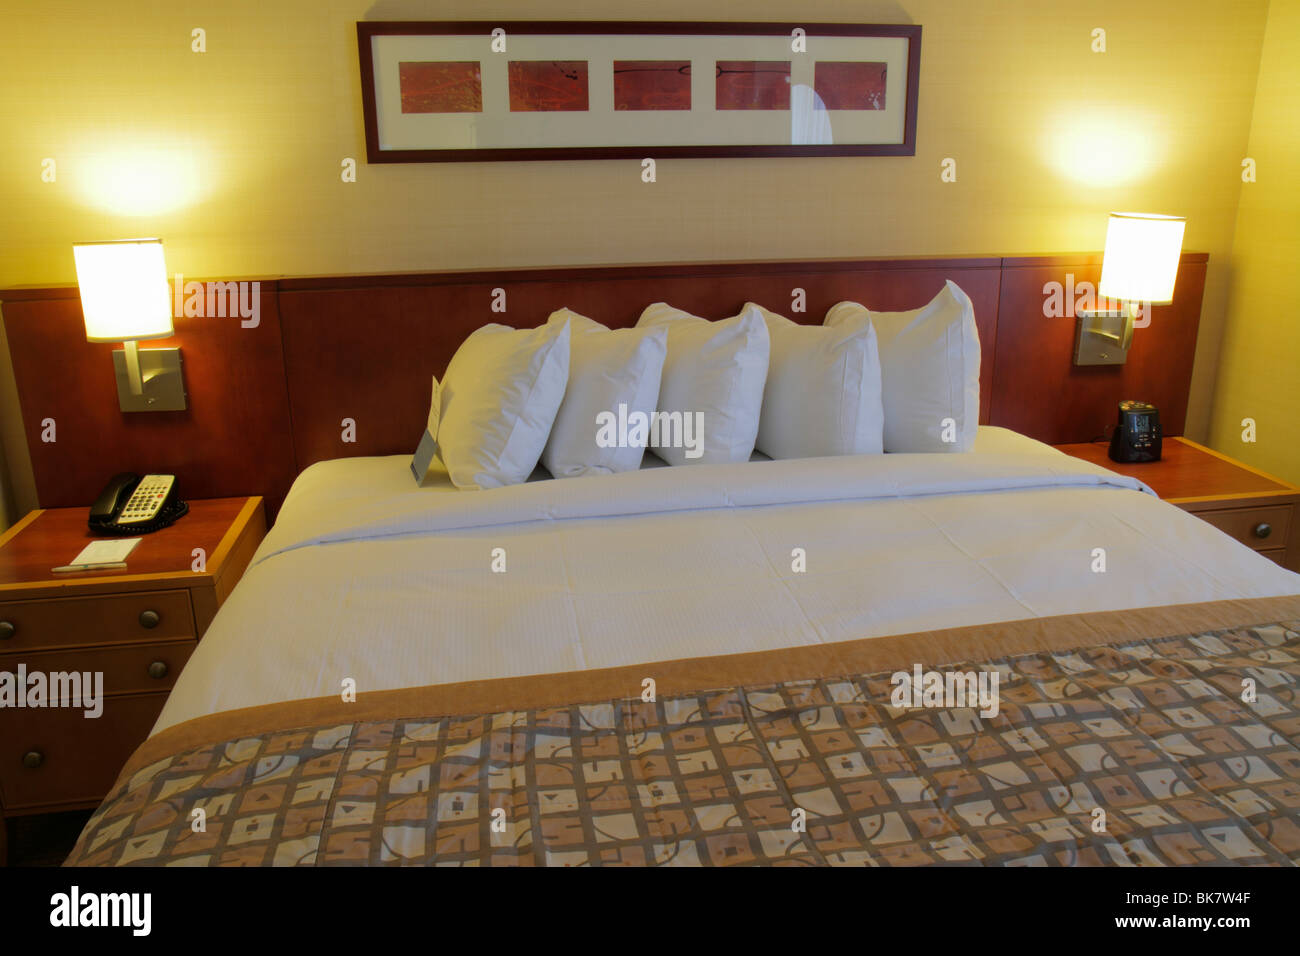 Washington DC 10th Street NW Embassy Suites Hotel lodging guest room king size bed bedding nghtstand lamp pillow - Stock Image